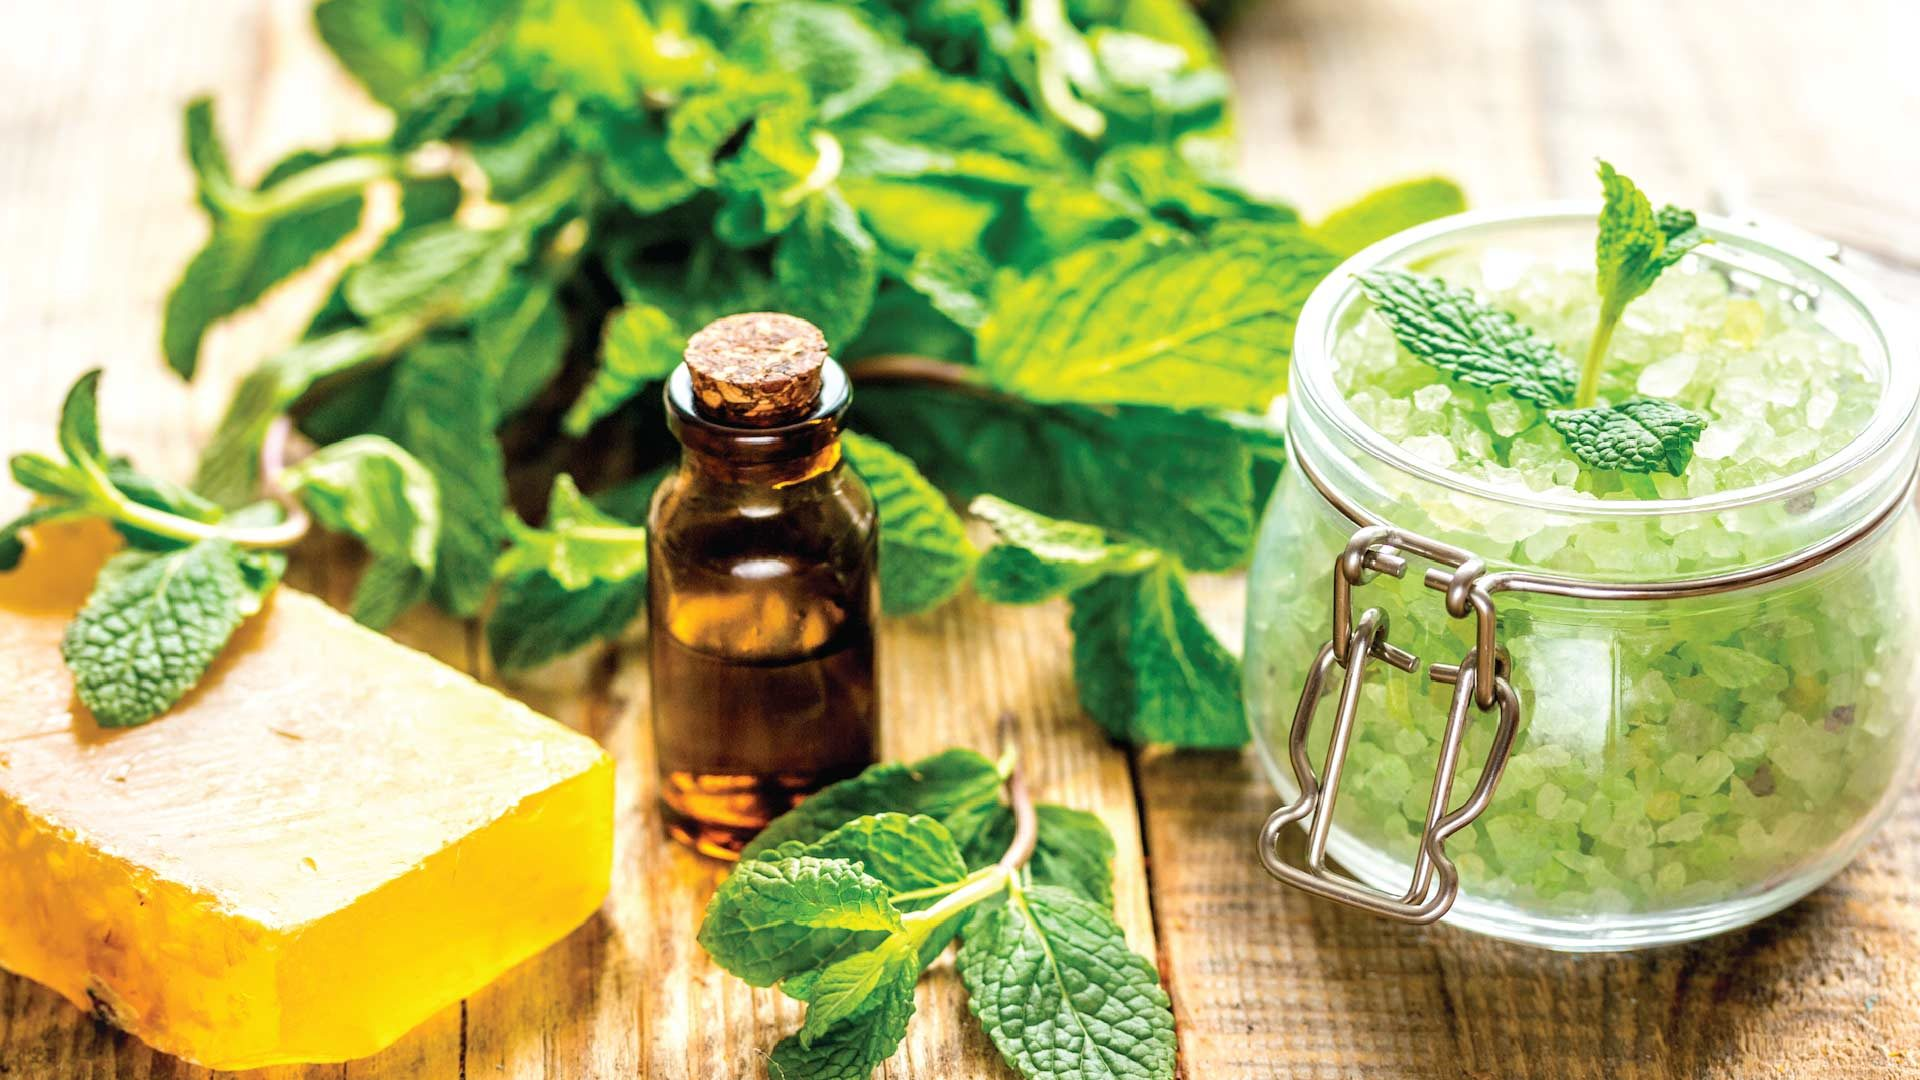 Useful information about CBD products